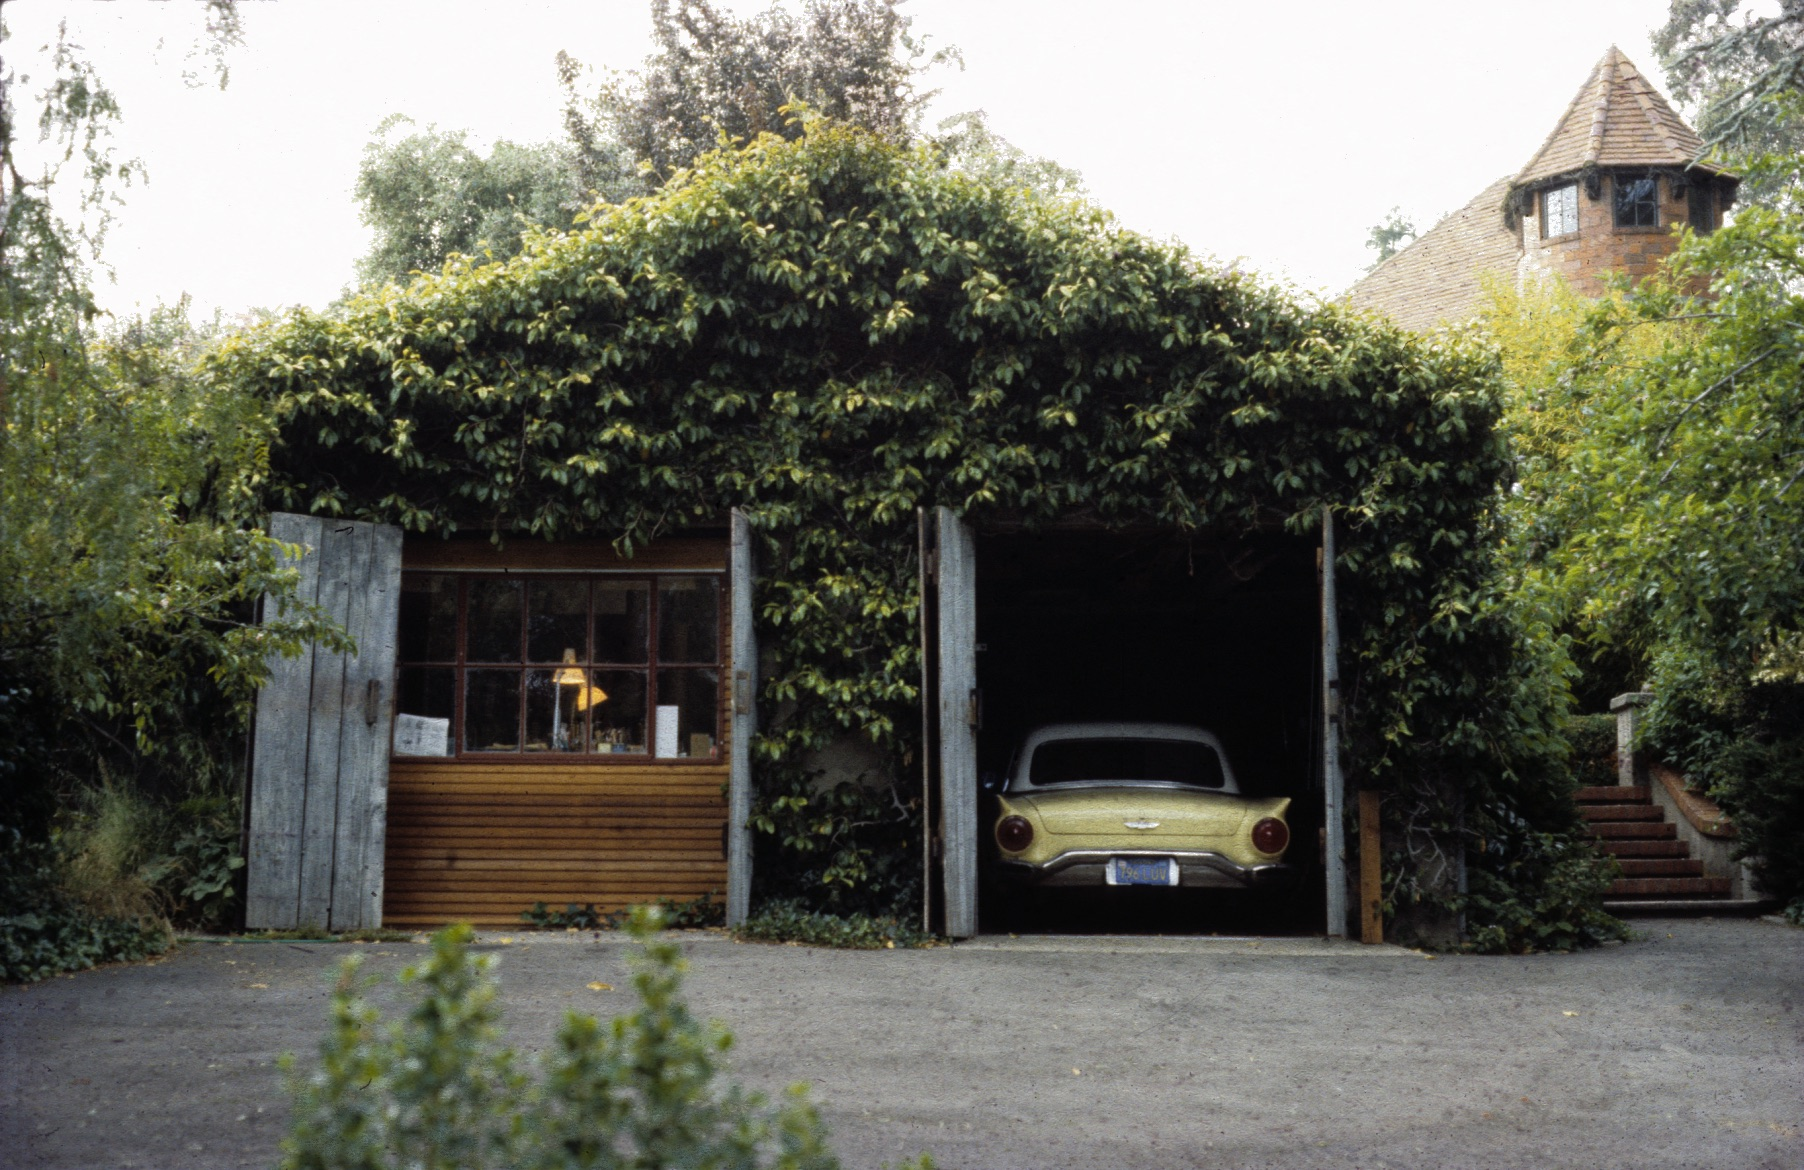 La Verada, the garage where I lived and worked, and the first Fernau + Hartman office, 1982